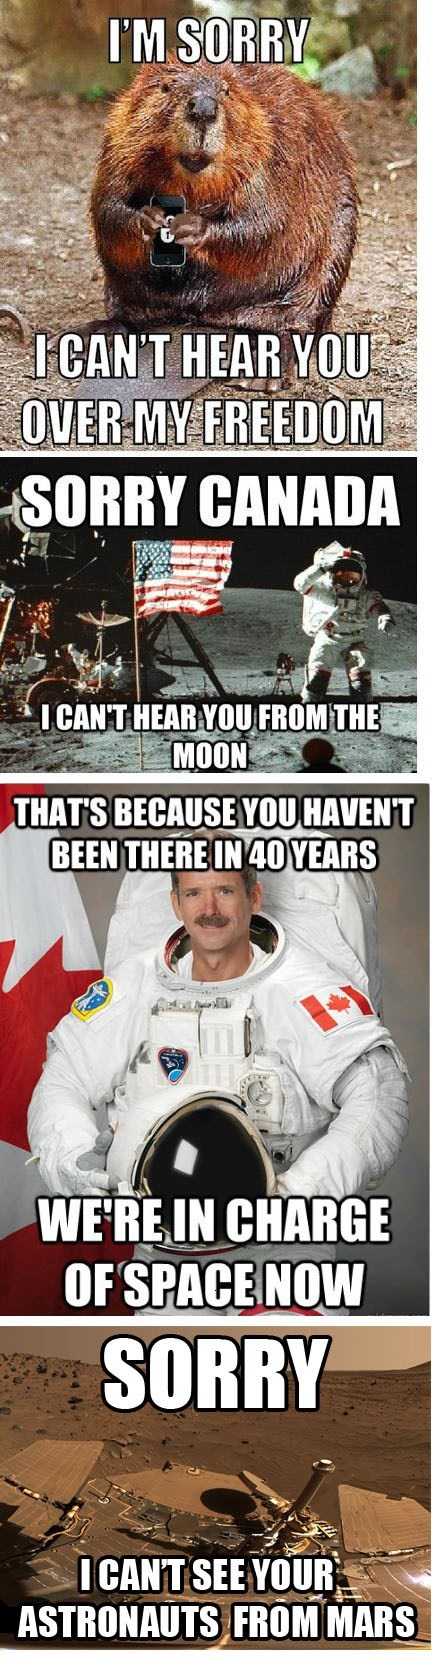 Canada nasa chris hadfield the moon Astronomy space - 8169351424